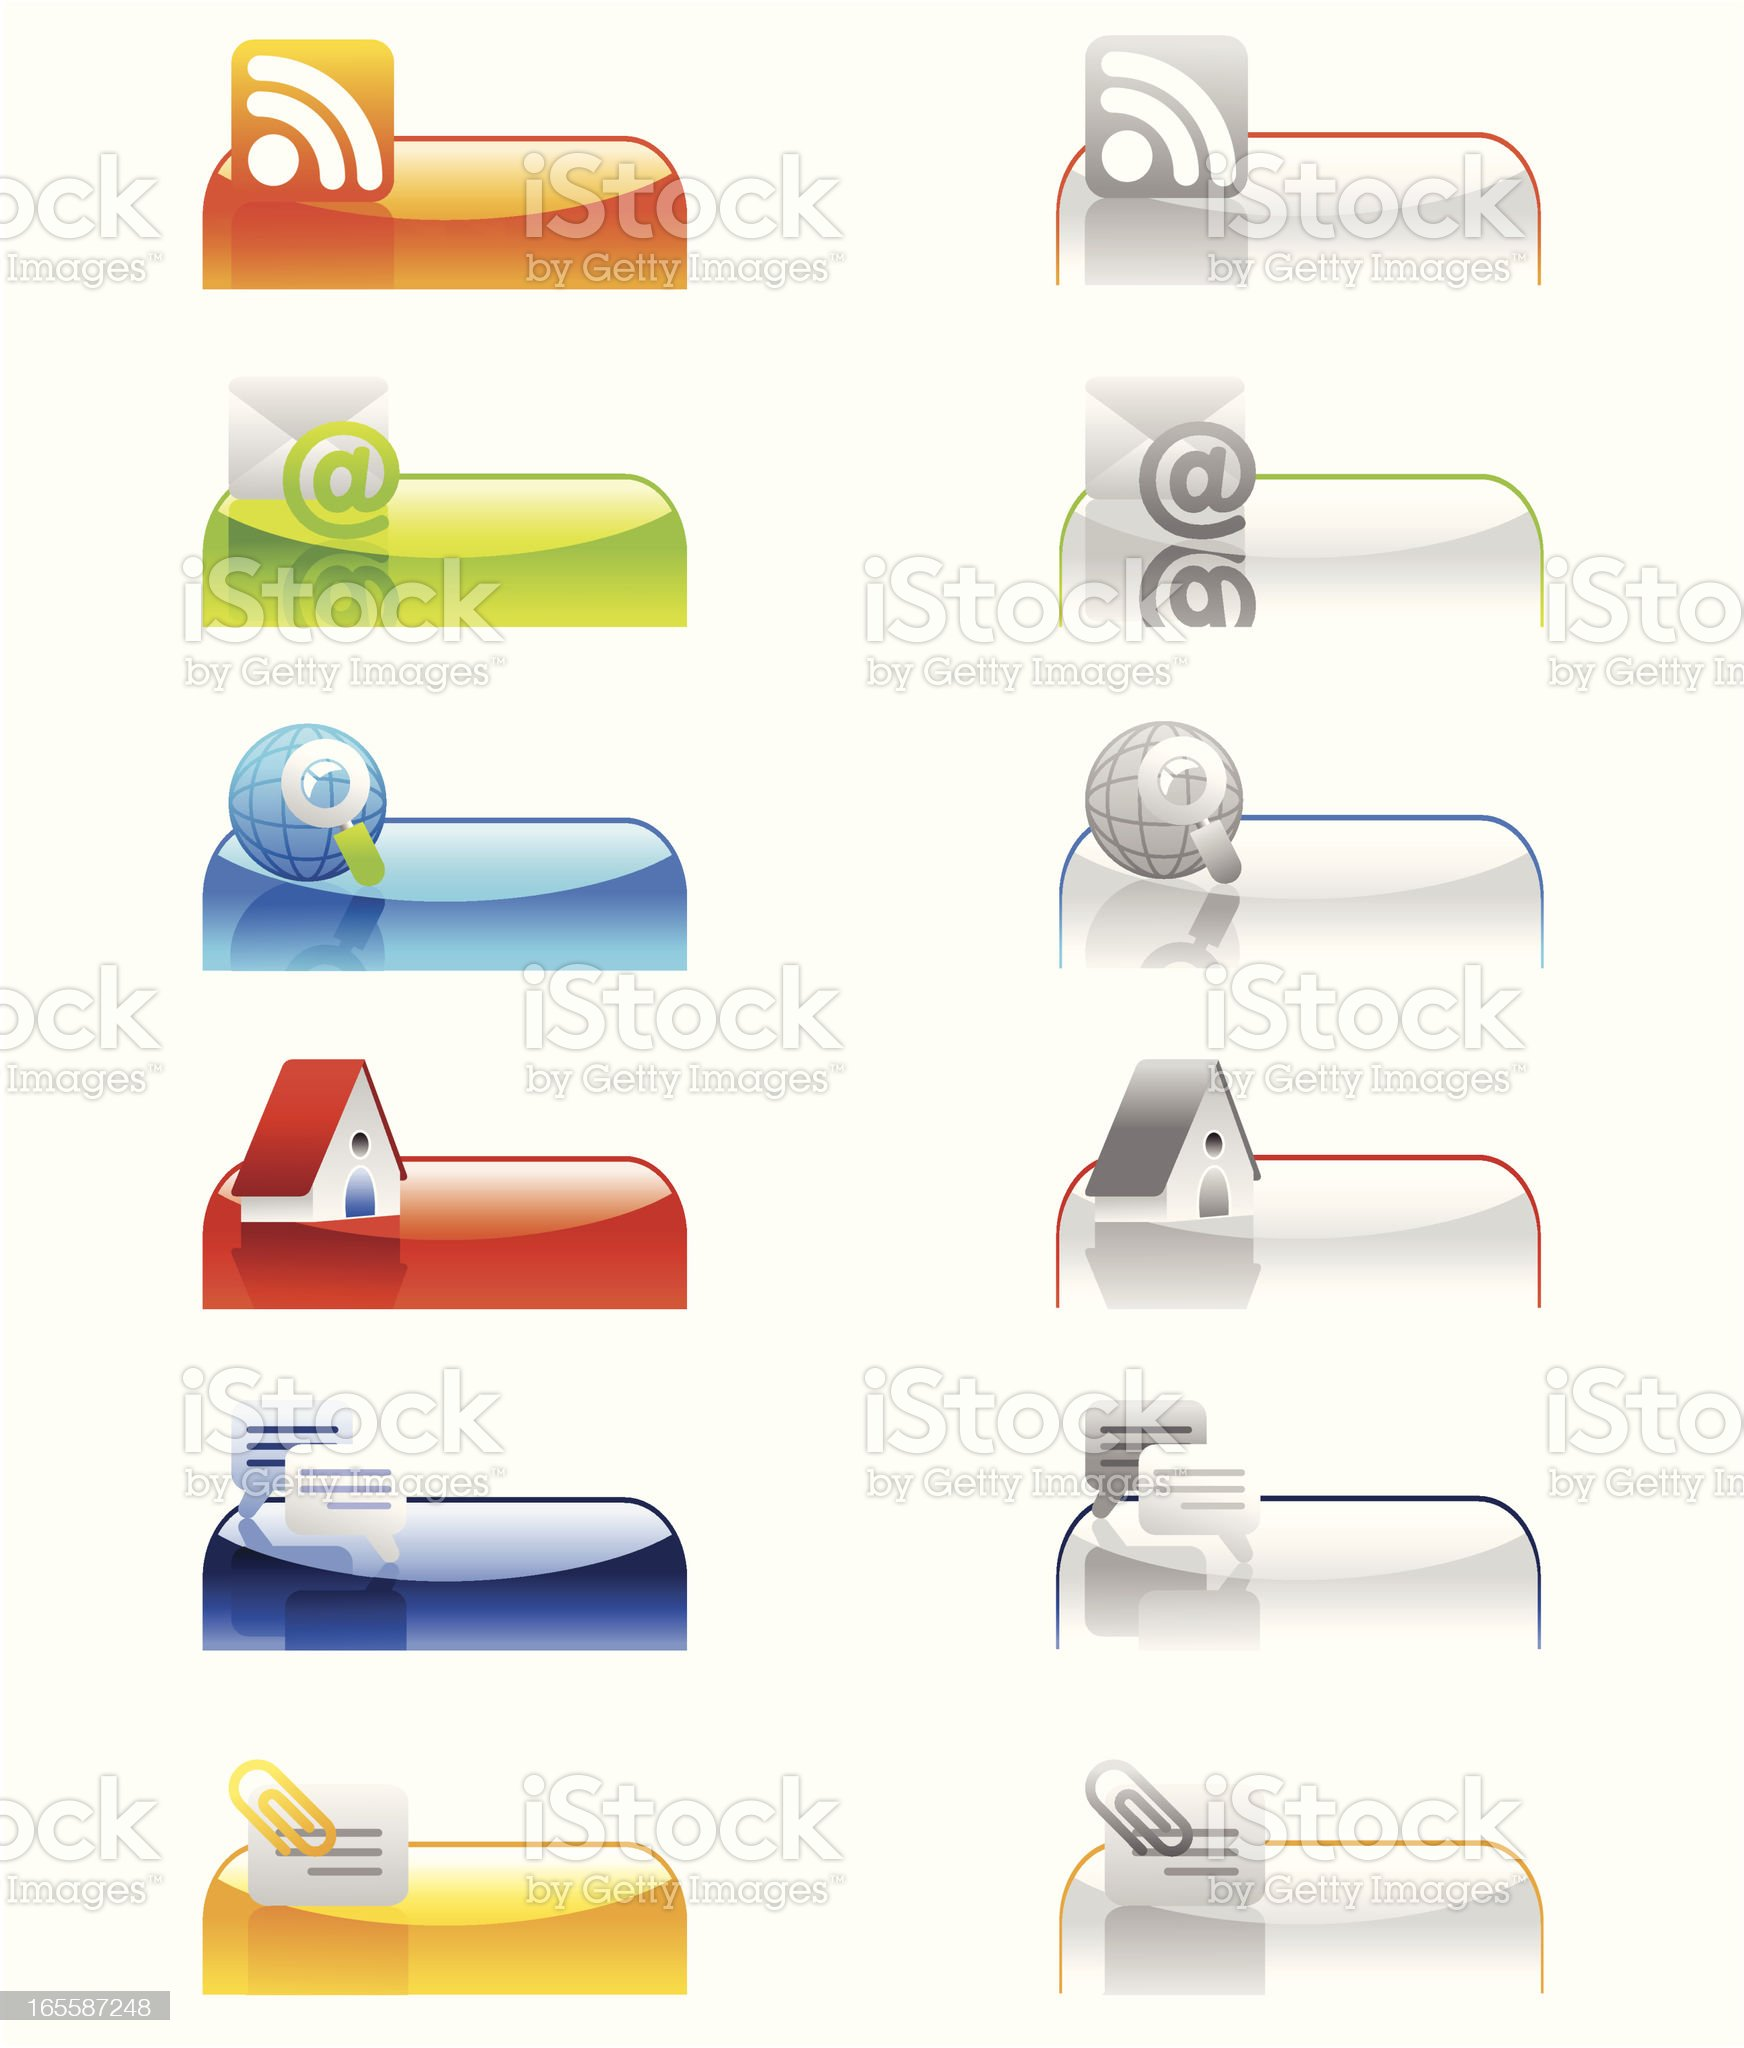 active- inactive tabs internet 2 royalty-free stock vector art